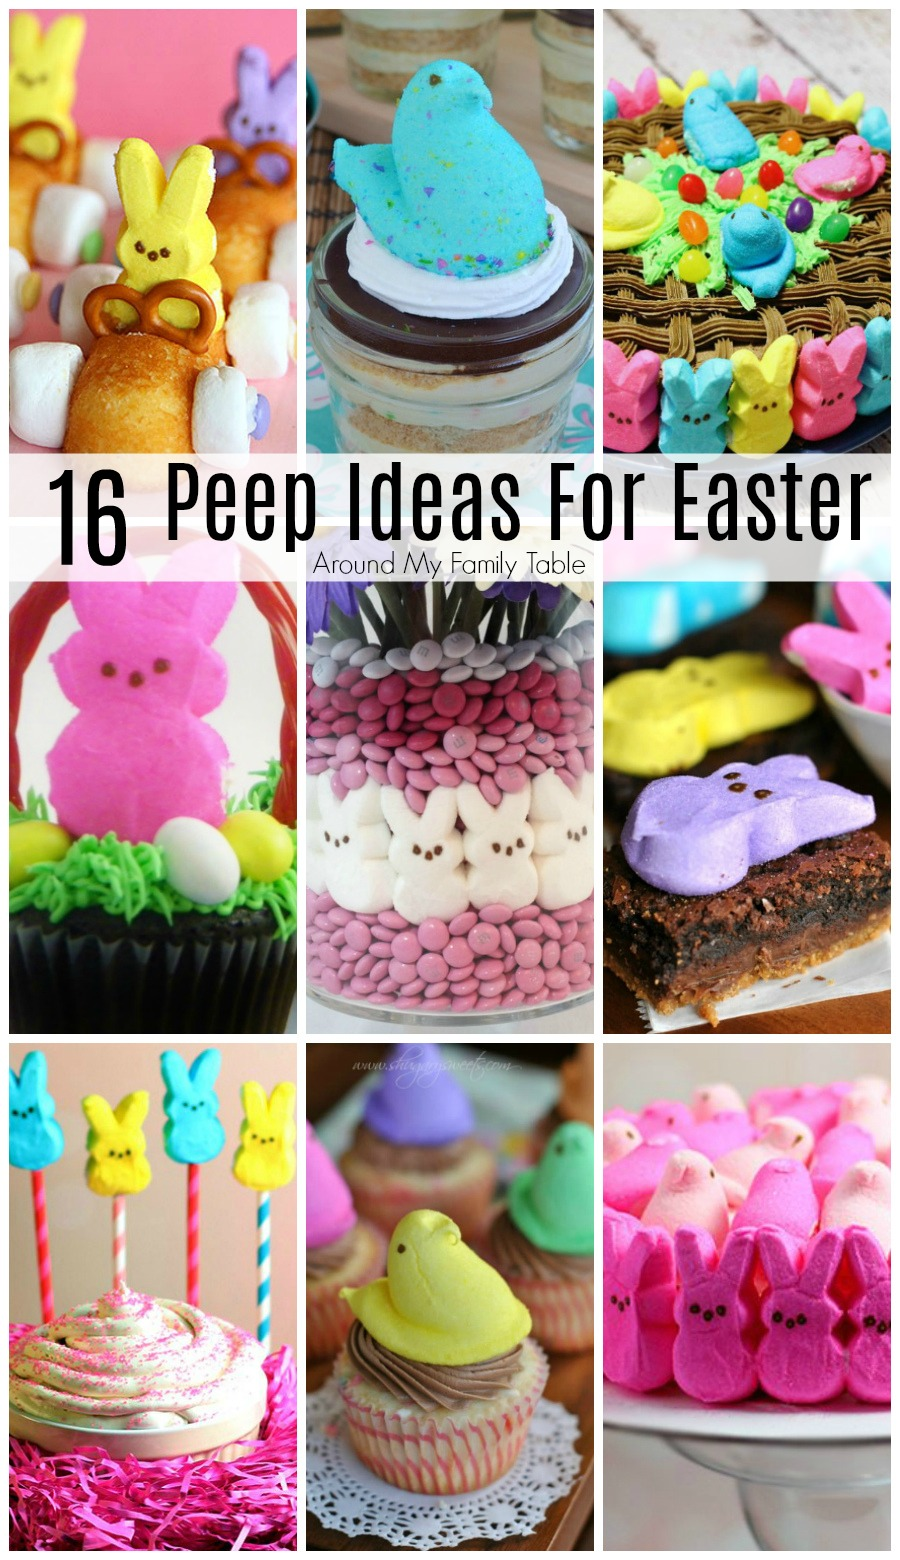 Hey Peeps fans!  You need these 16 Peeps Ideas for Easter to take you Peep addiction to a new level. #peeps #easter #easterdesserts via @slingmama